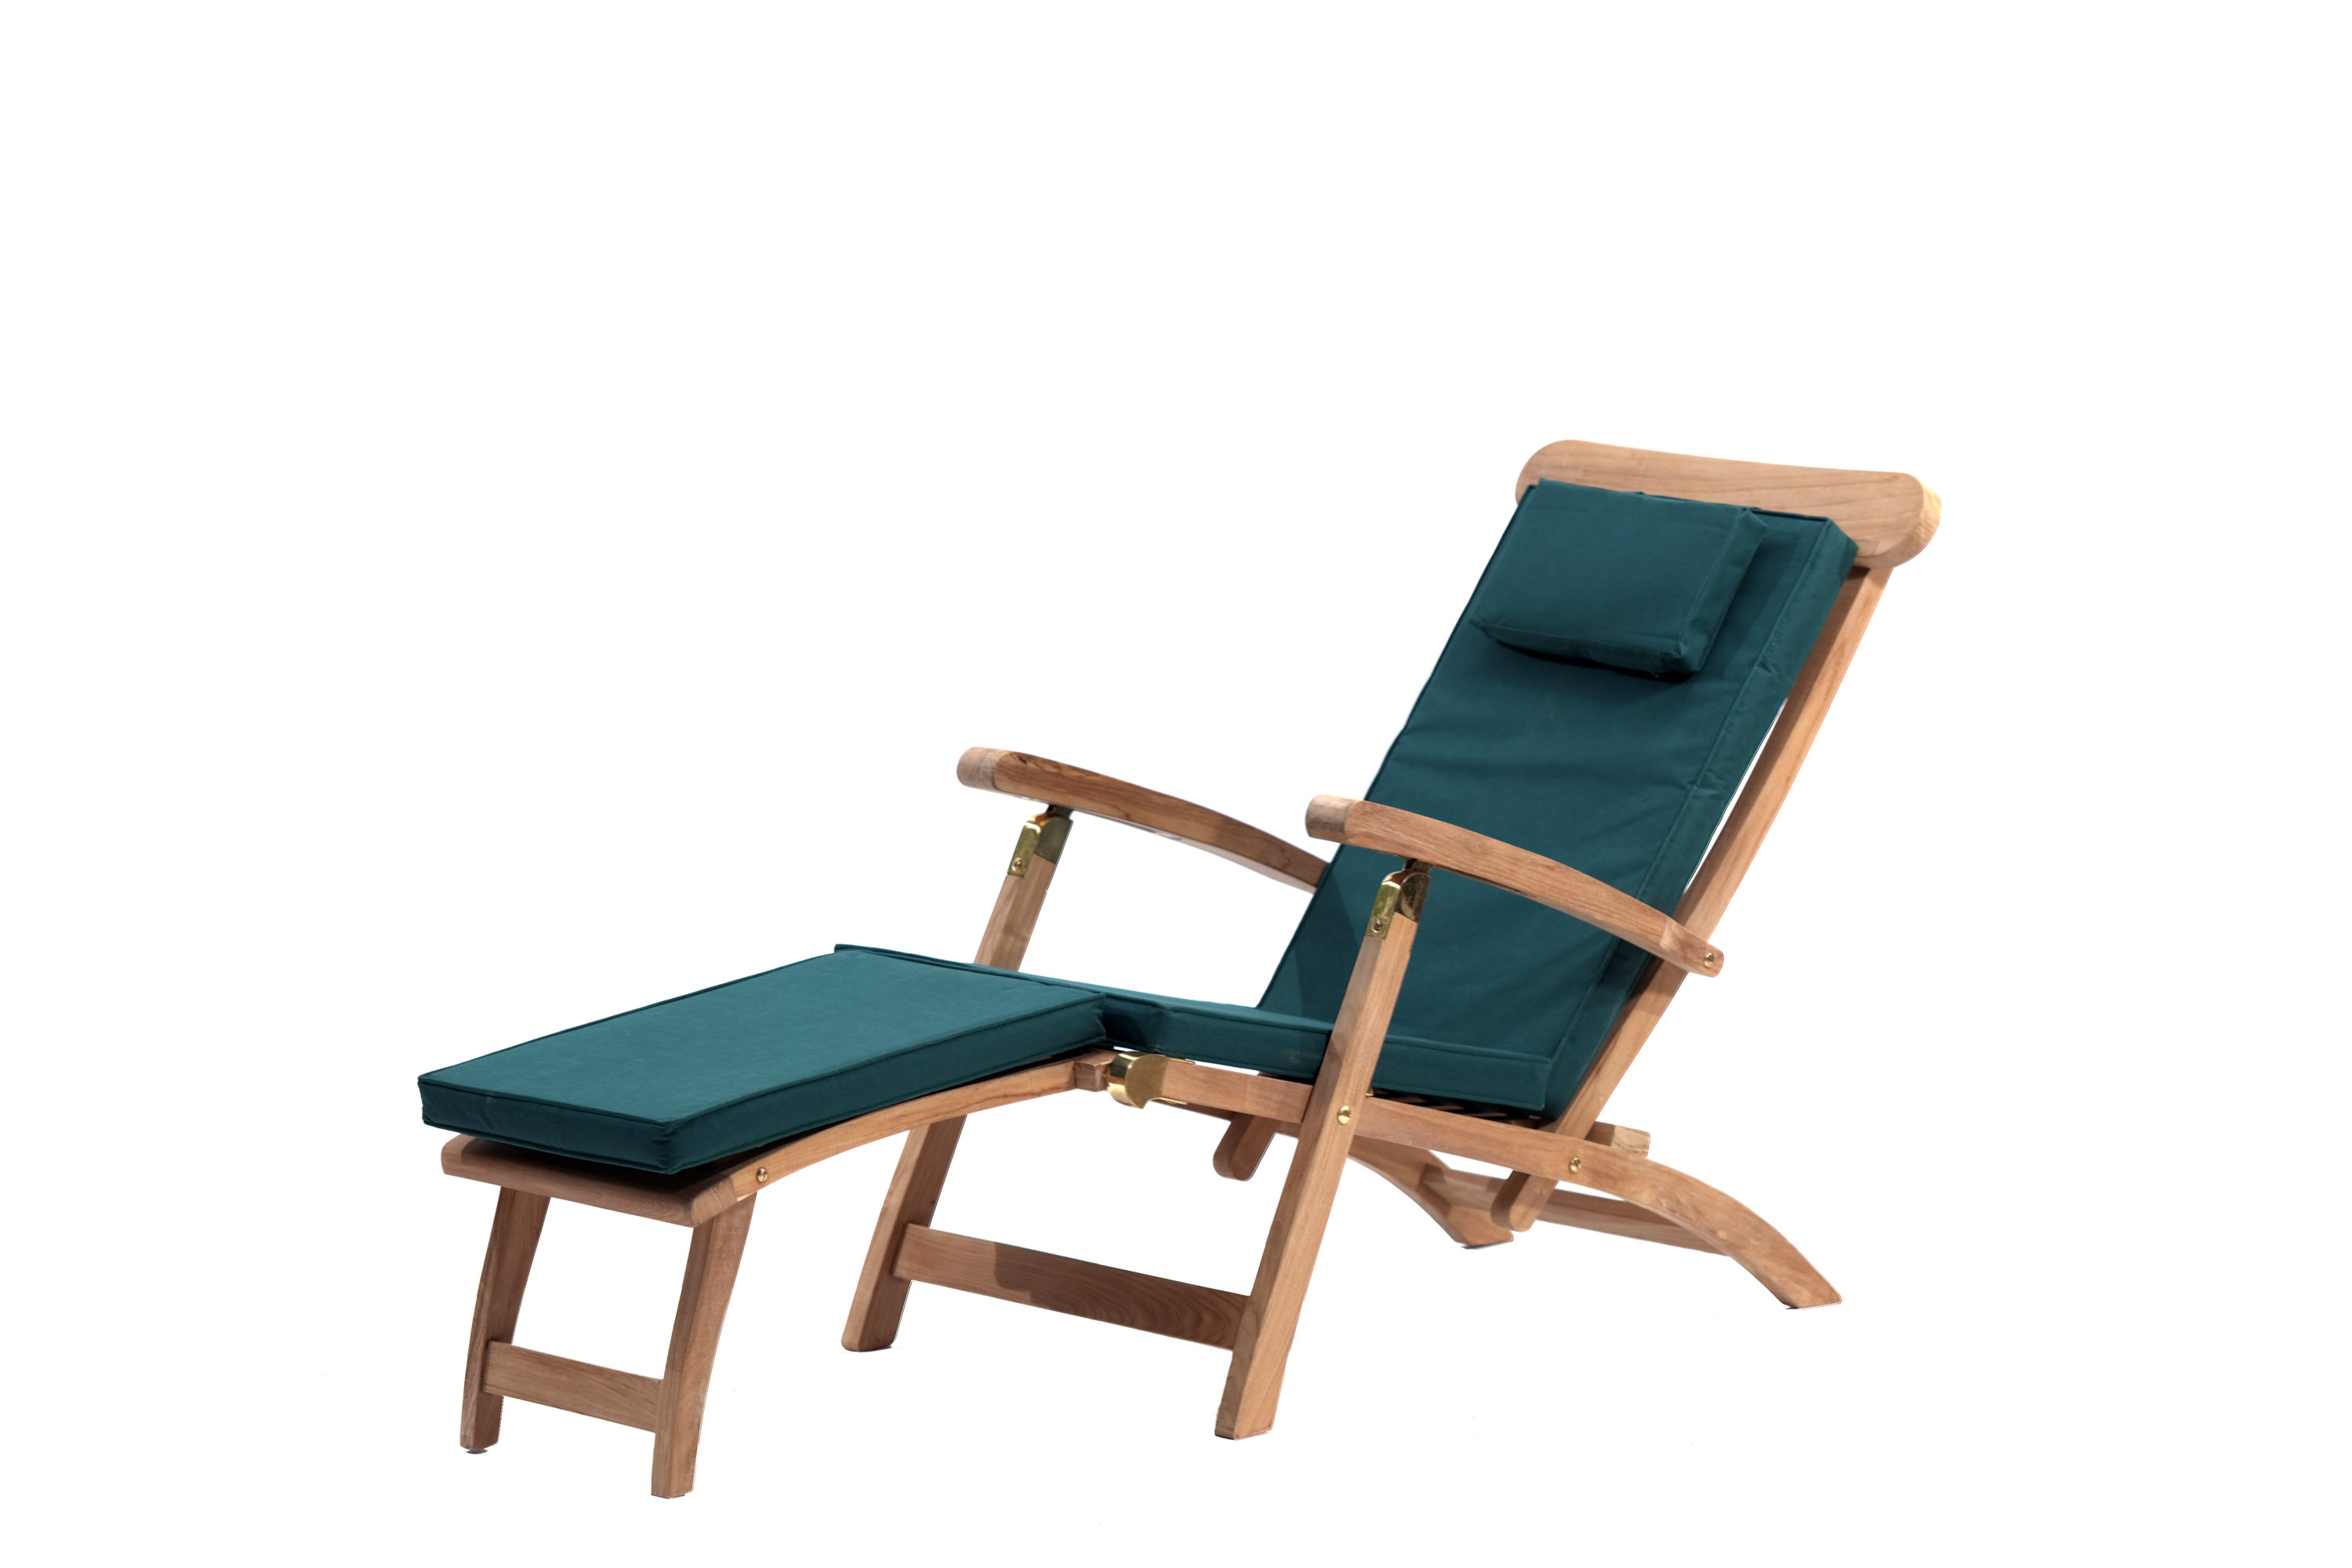 cushions for teak steamer chairs recliners that look like top quality humber and cushion patio garden